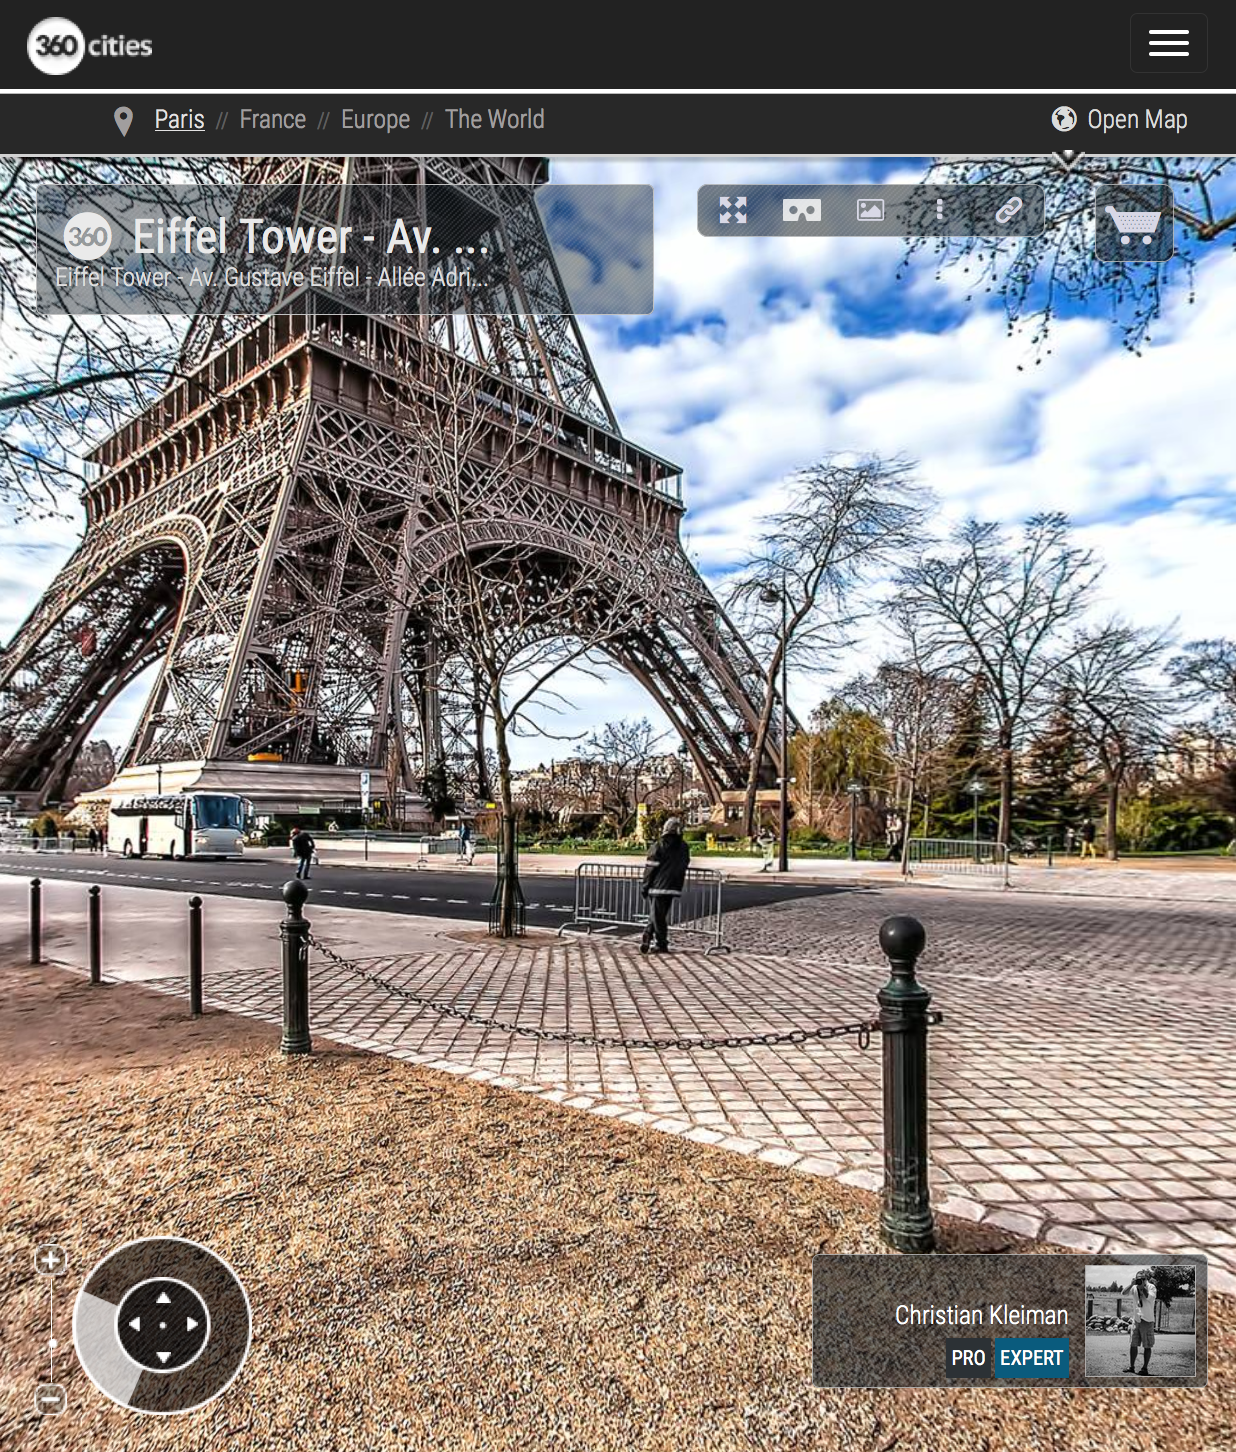 Eiffel Tower Paris - Av. Gustave Eiffel - Allée Adrienne Lecouvreur - Creative 360 VR Spherical Panoramic Photos - Emblematic Paris by © Christian Kleiman